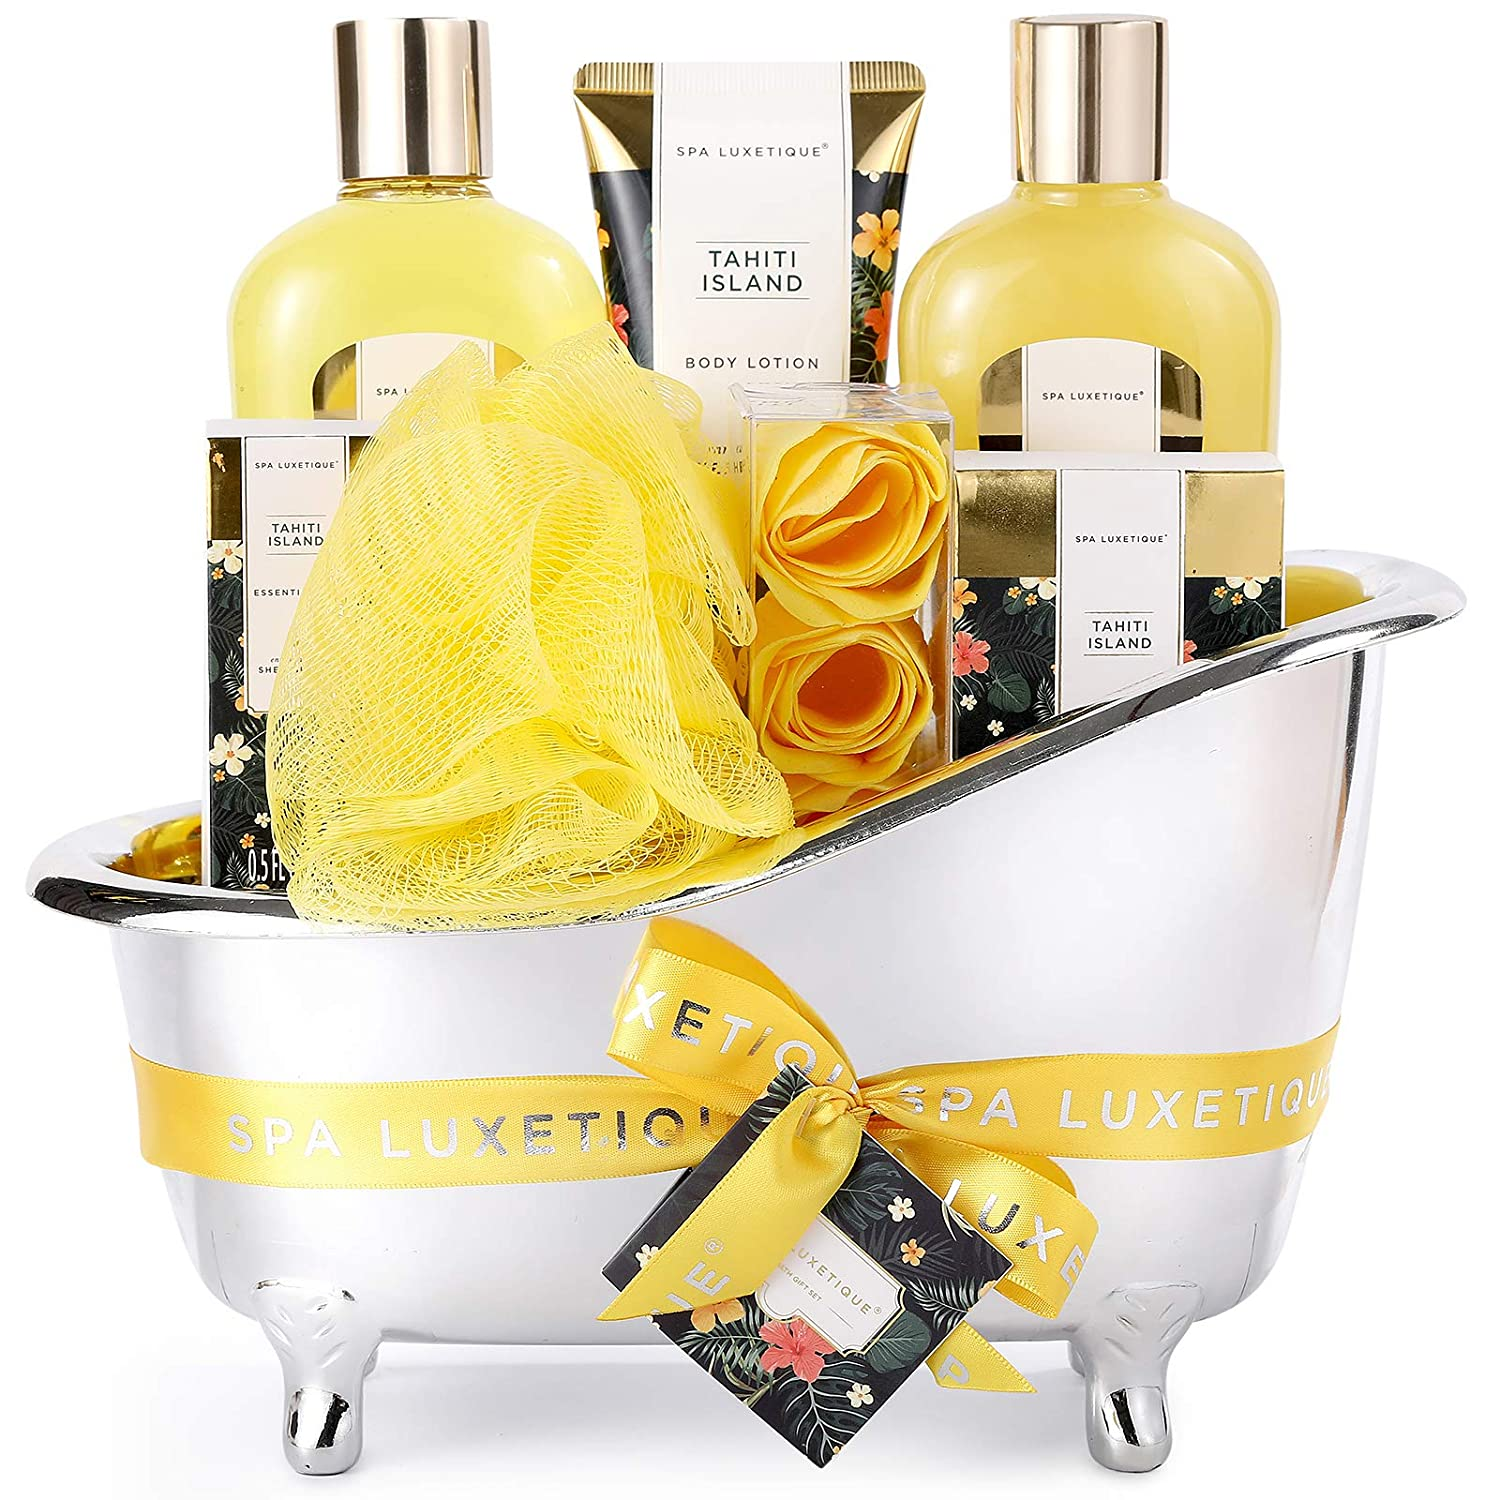 Gift Baskets for Women, Spa Luxetique Spa Bath Set, 8 Pcs Bath and Body Gift Set with Shower Gel, Bath Salt, Essential Oil, Luxury Christmas Gifts, Beauty Gift Set for Women